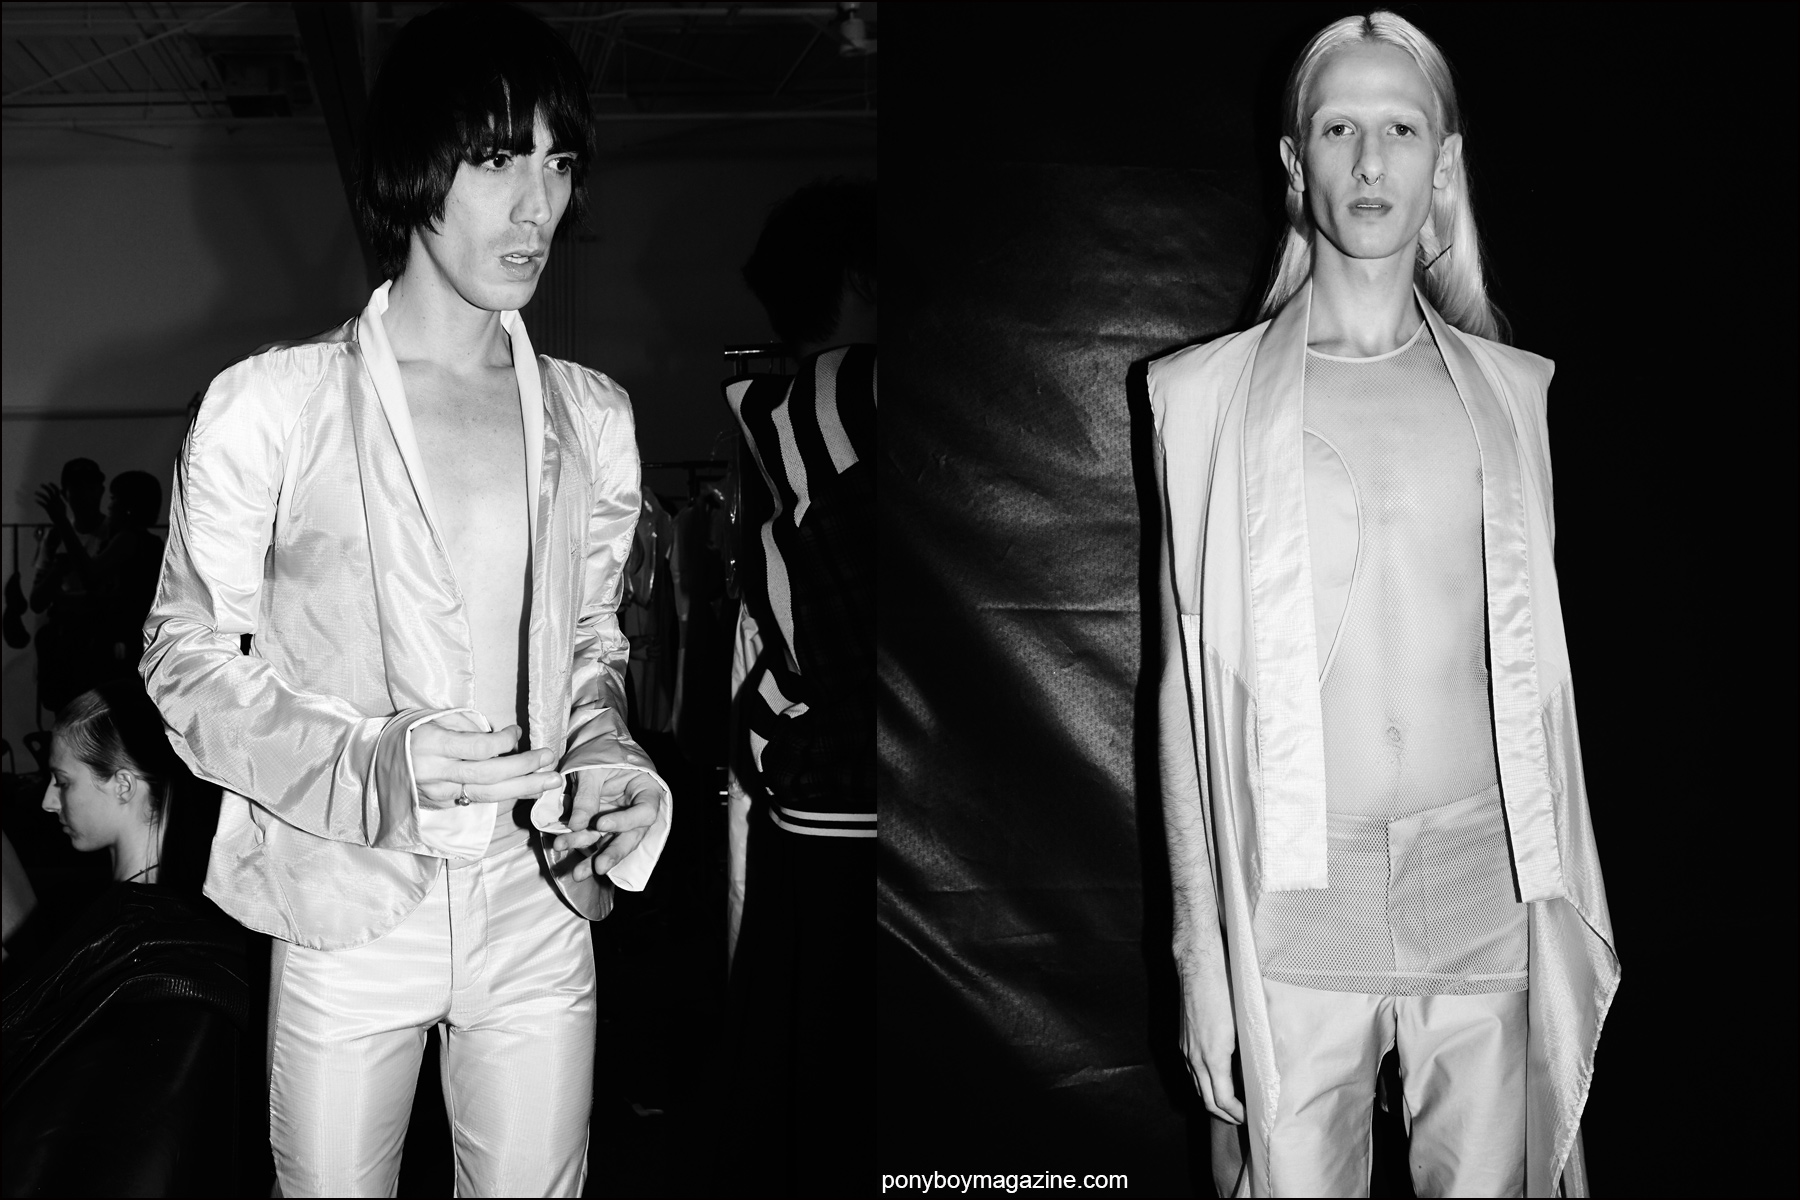 Male models photographed backstage at the Spring/Summer 2016 fashion show by avant garde design trio threeASFOUR. Photography by Alexander Thompson for Ponyboy magazine NY.